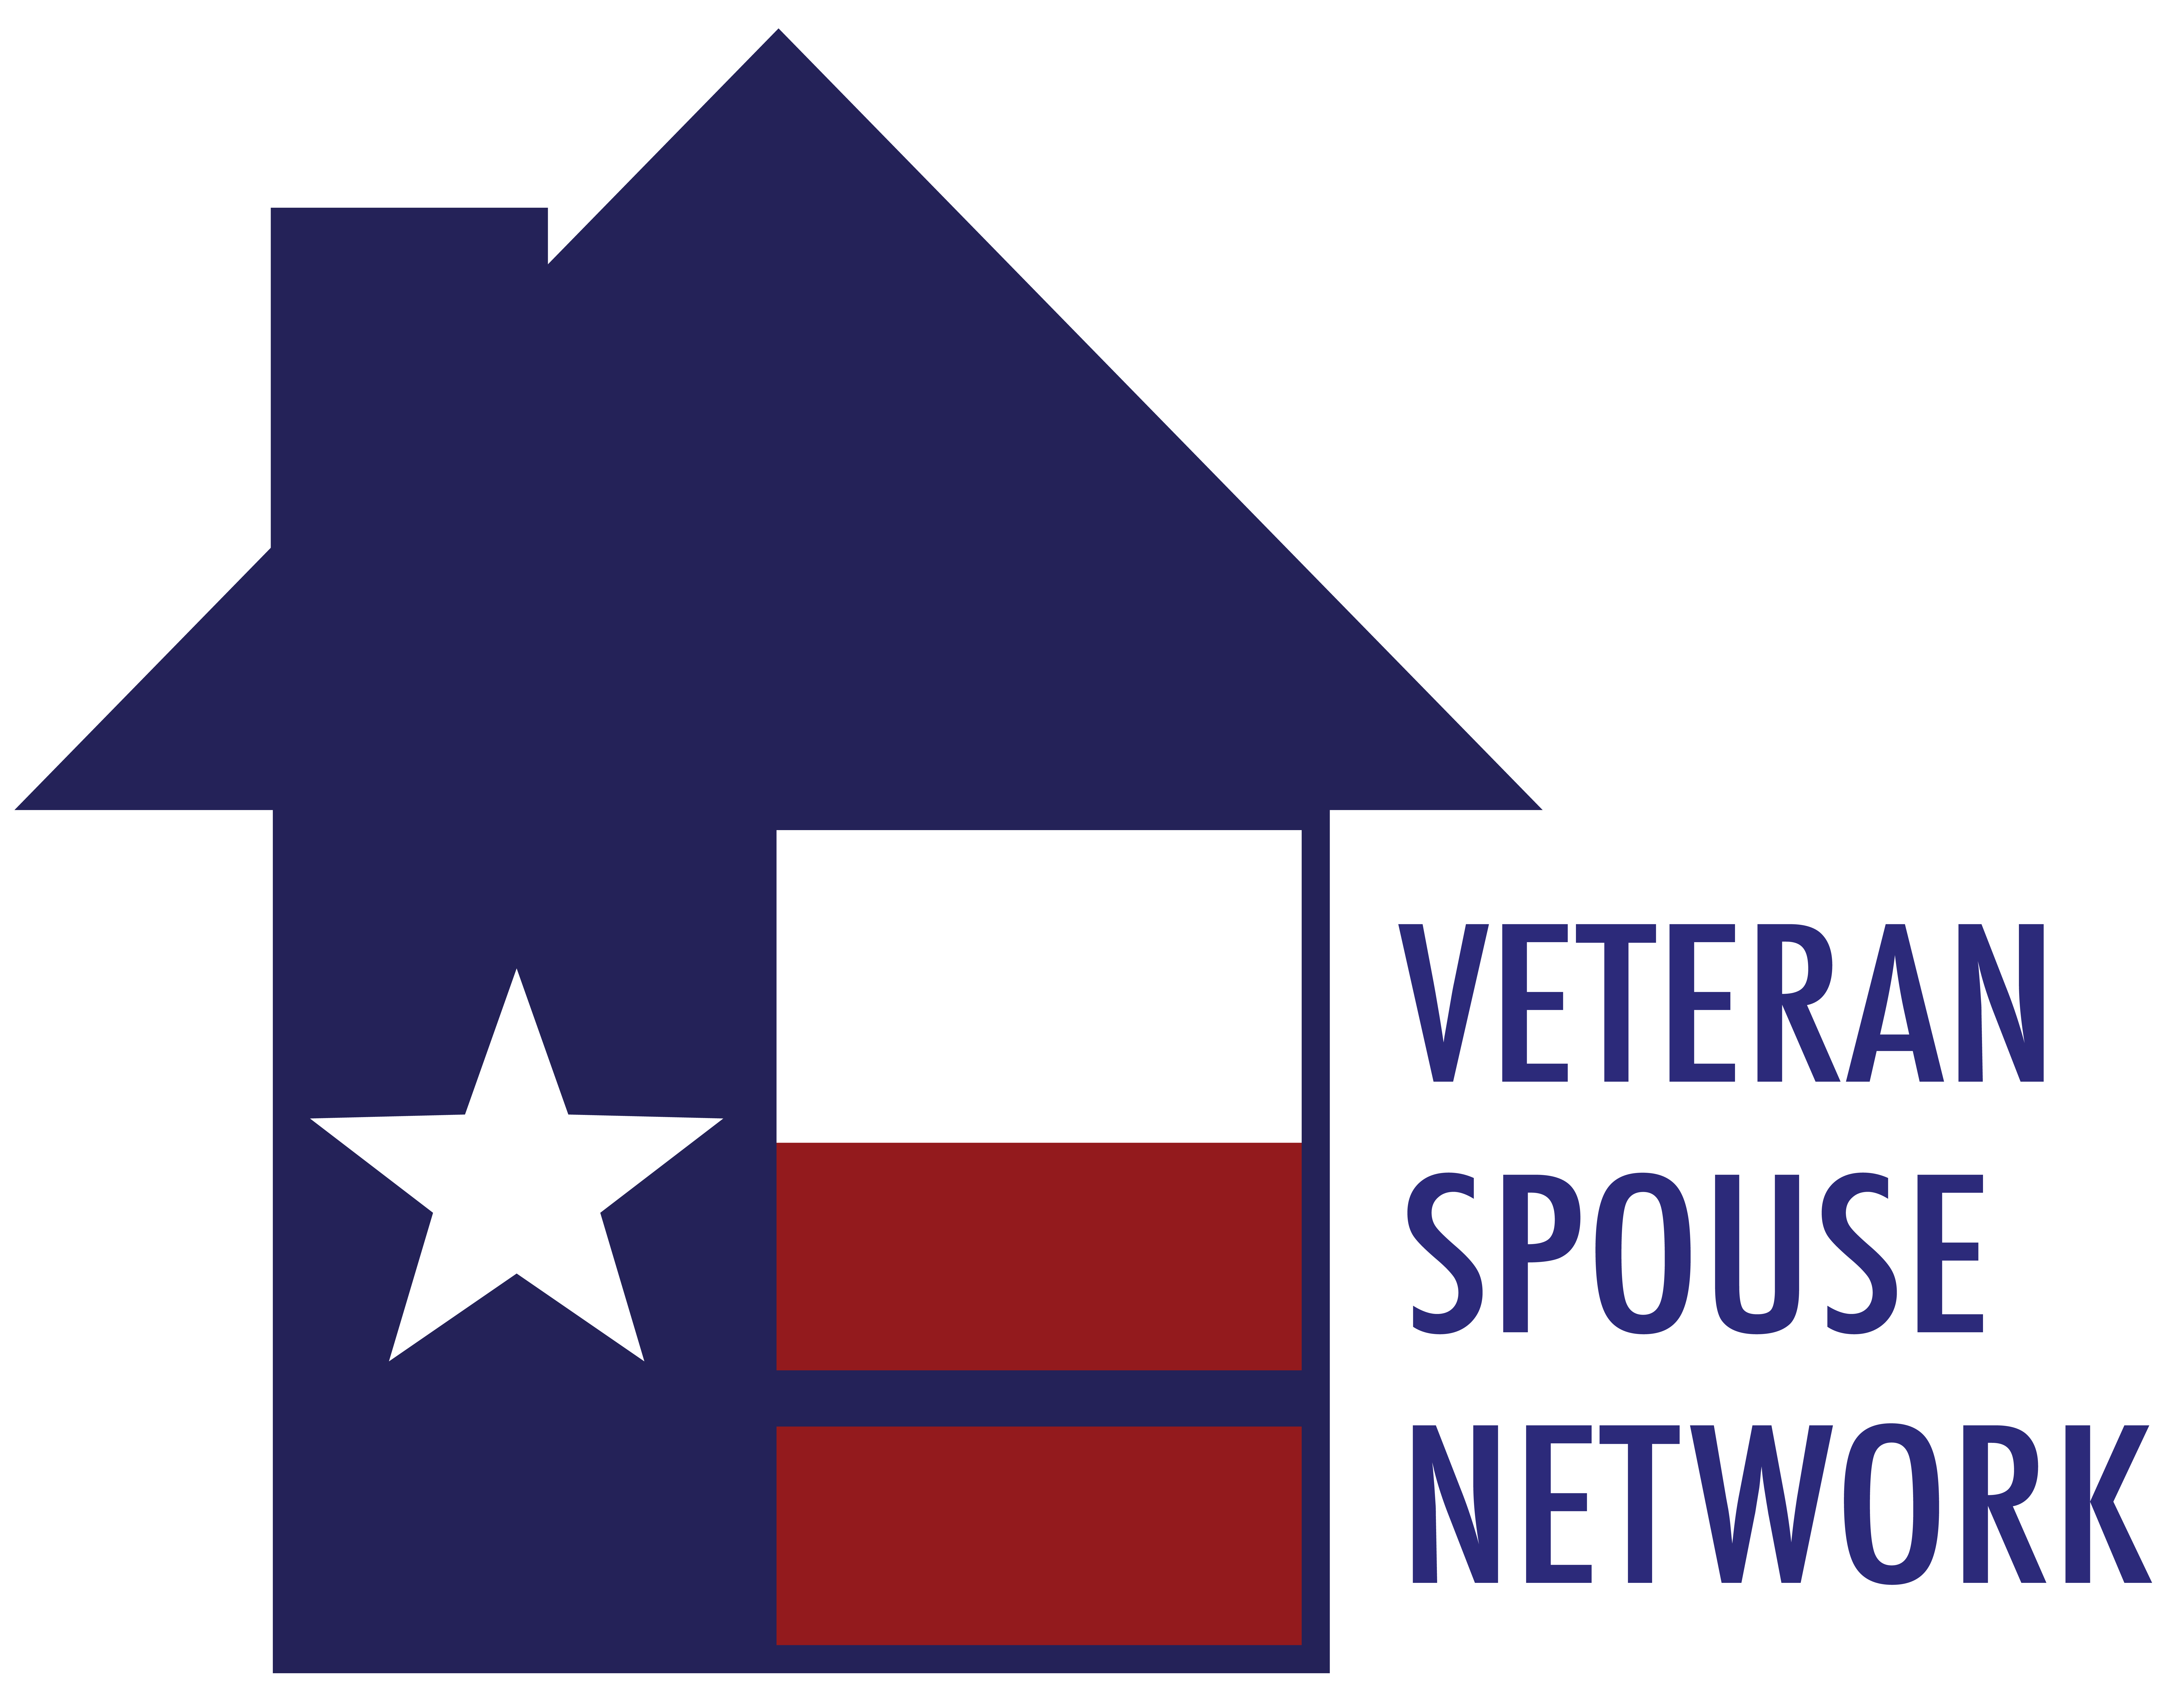 The Veteran Spouse Network